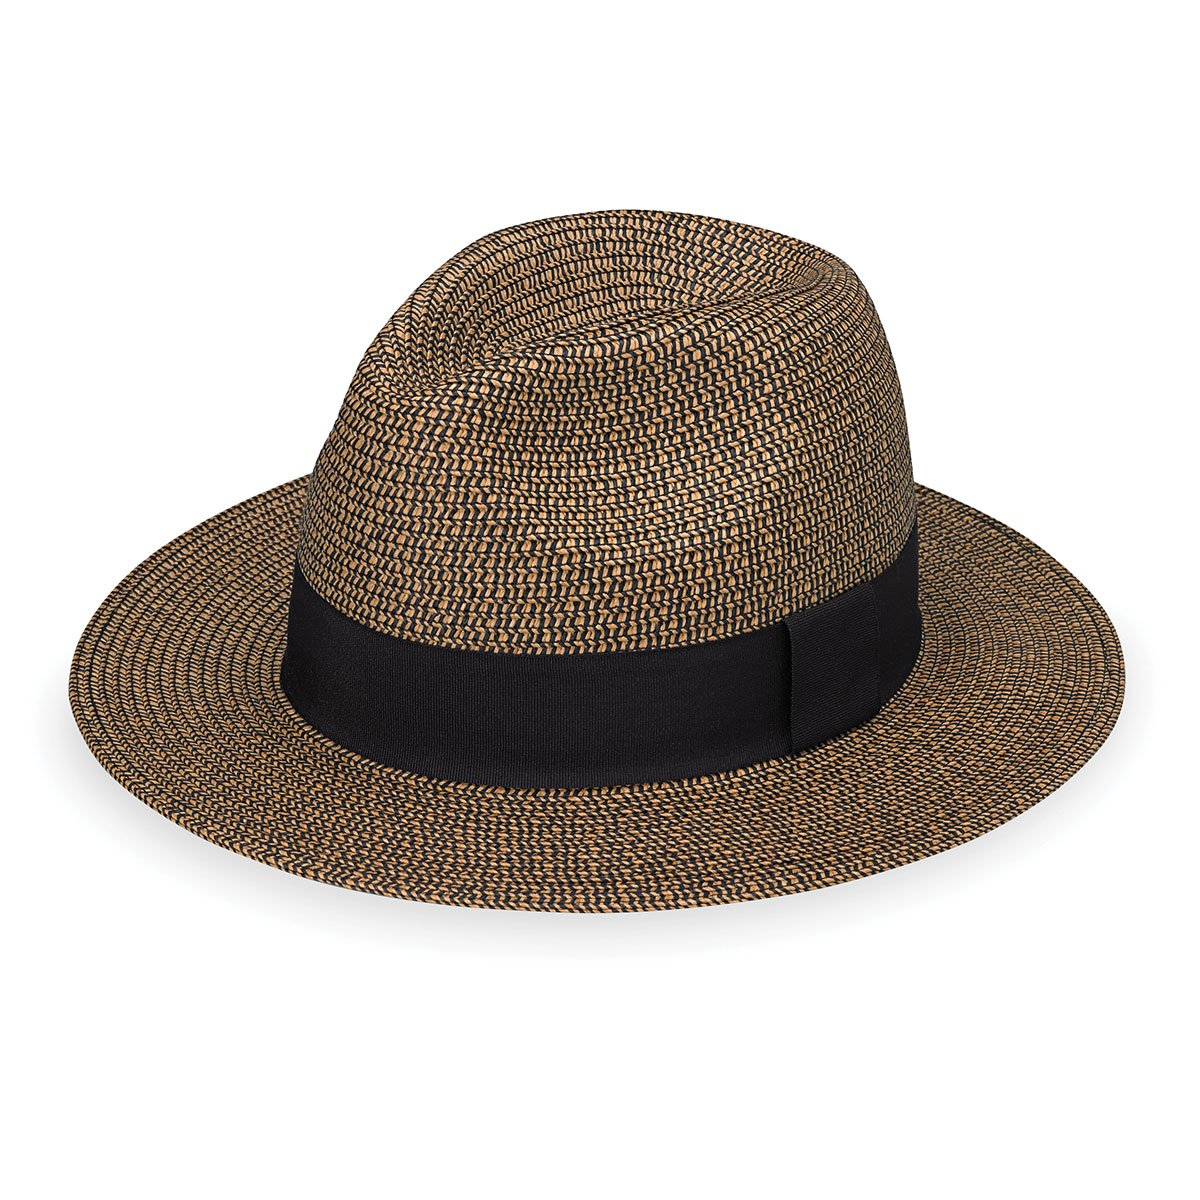 Wallaroo Hat Company Women's Josie Sun Hat - Lightweight and Breathable Sun Hat - UPF 50+, Mixed Brown